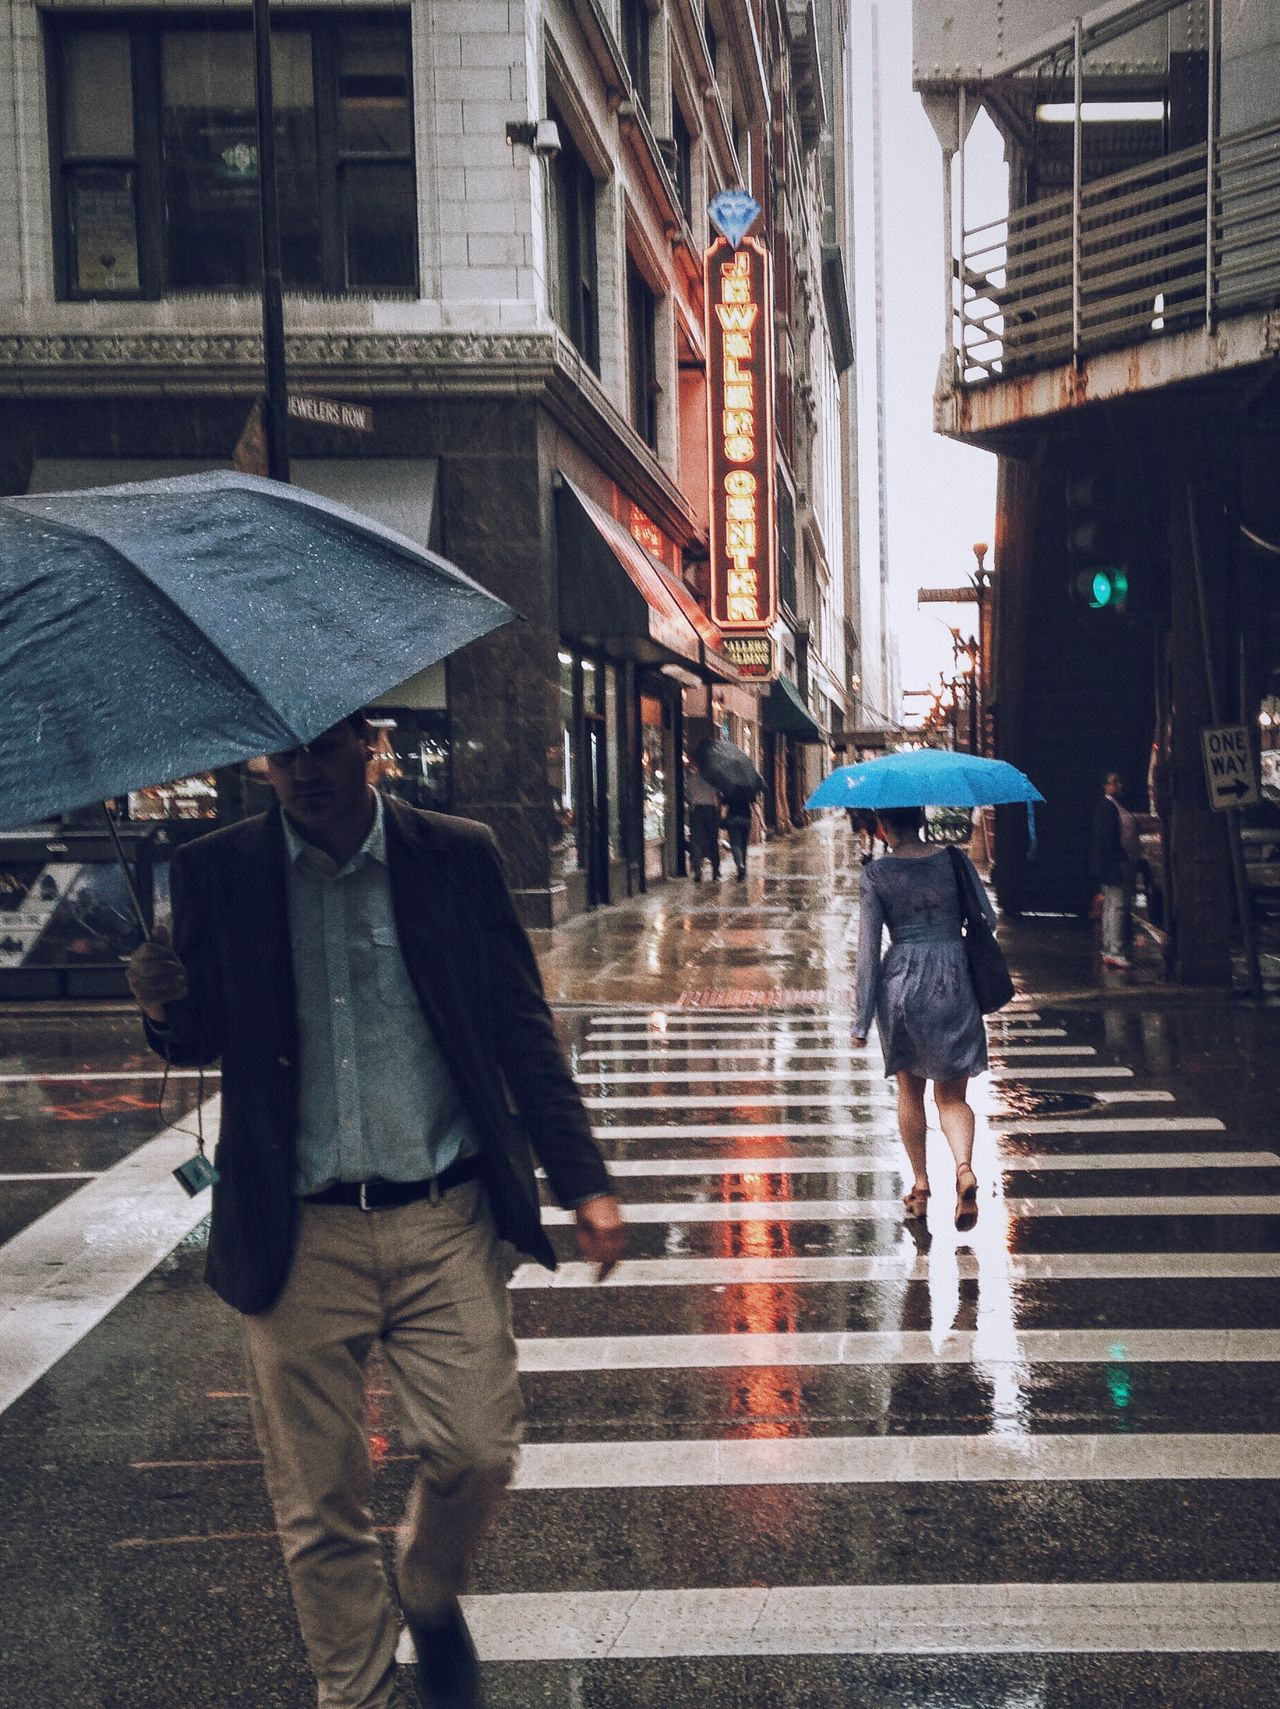 City Street Walking Rain Wet Building Exterior Built Structure Pedestrian City Life Outdoors Architecture Urgency Full Length People Adults Only One Person Adult Night